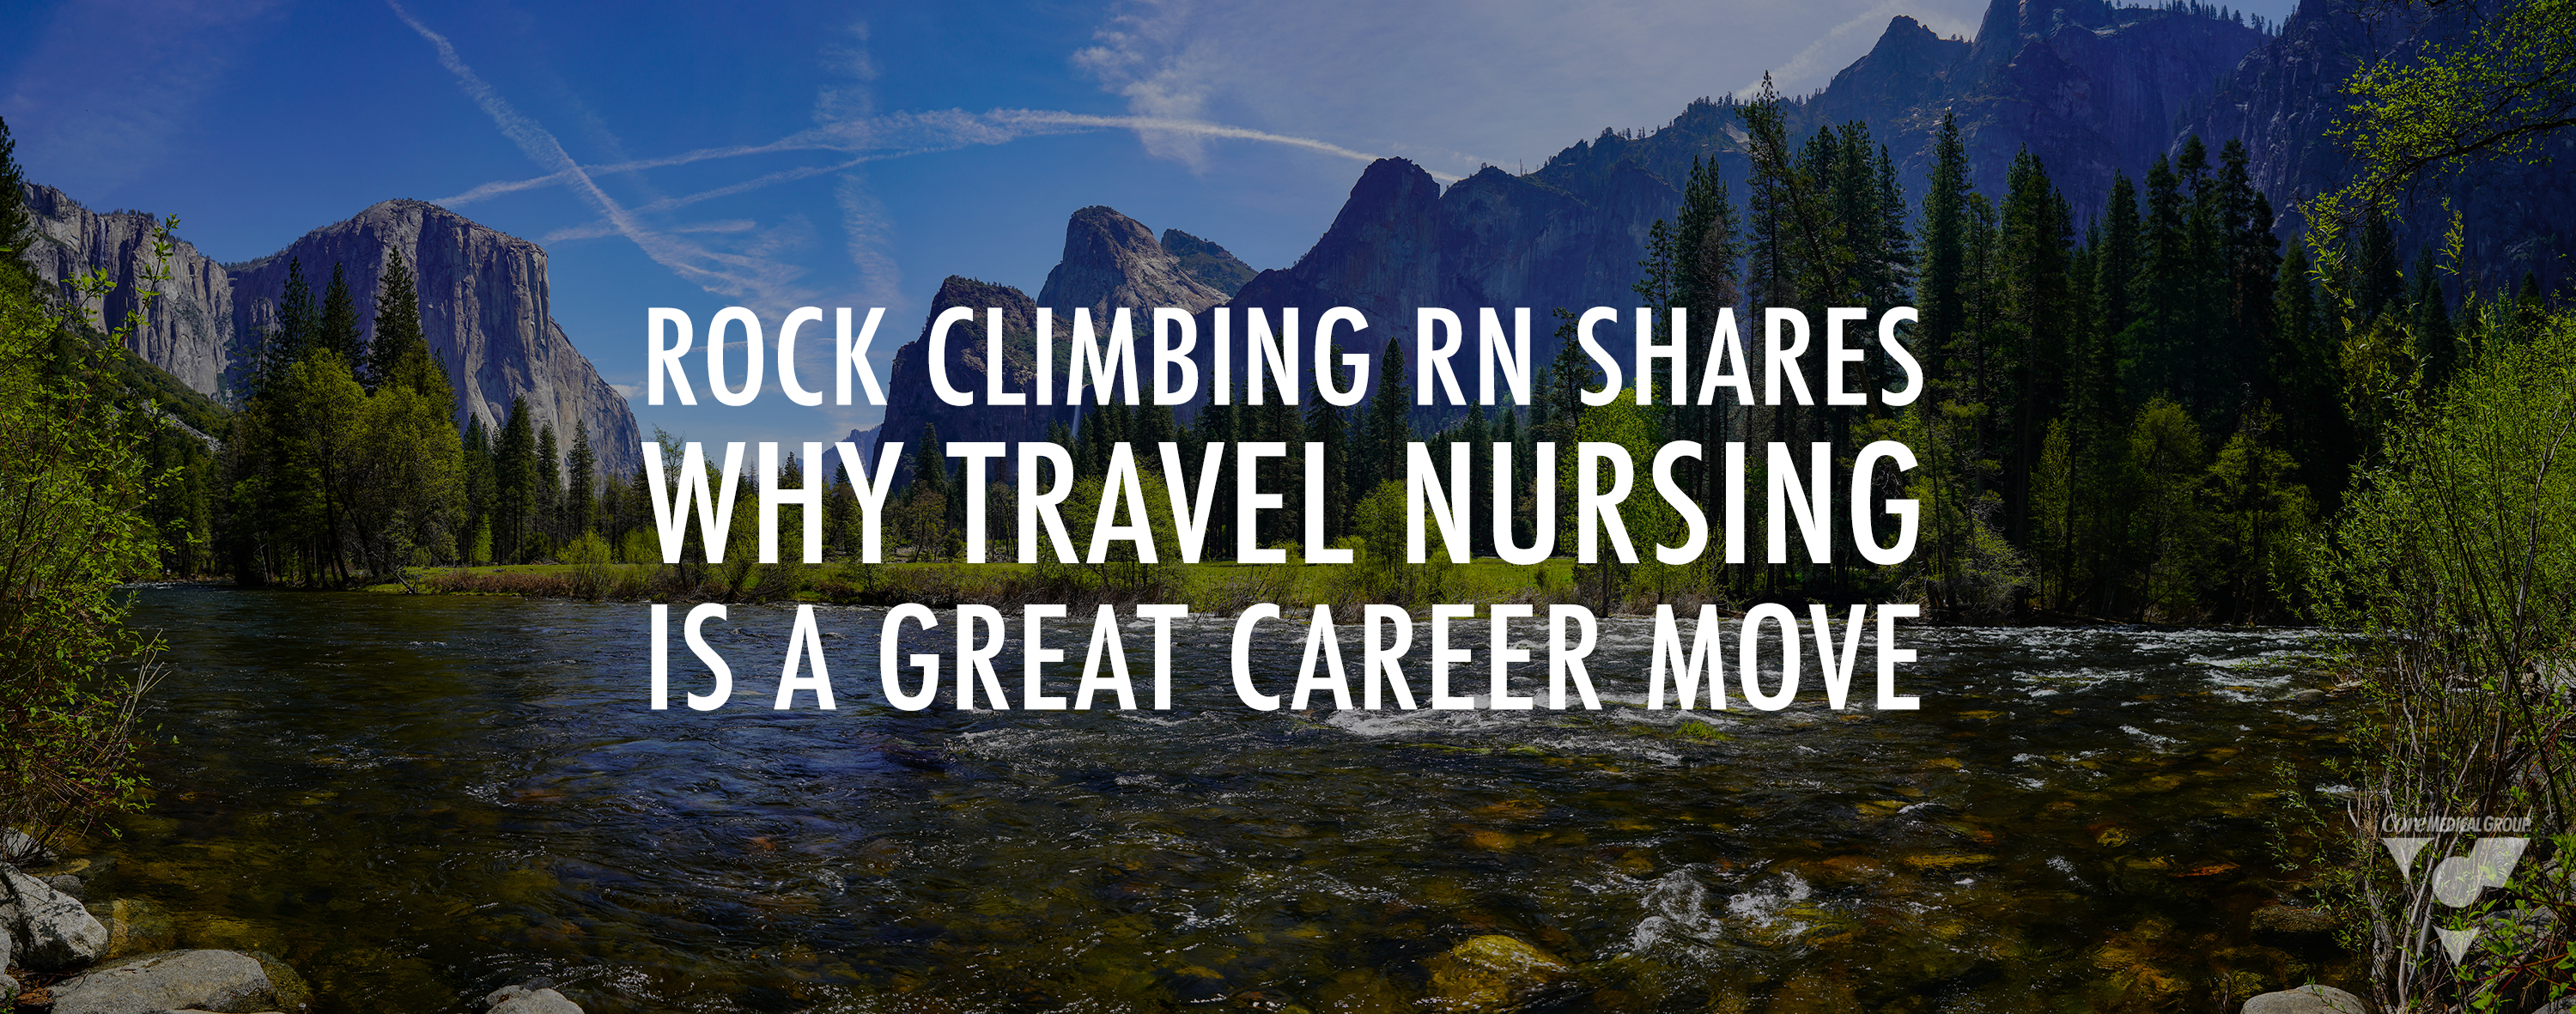 CMG_Blog_Featuredimages_Rock Climbing RN Shares Why Travel Nursing is a Great Career Move_R1_Blog